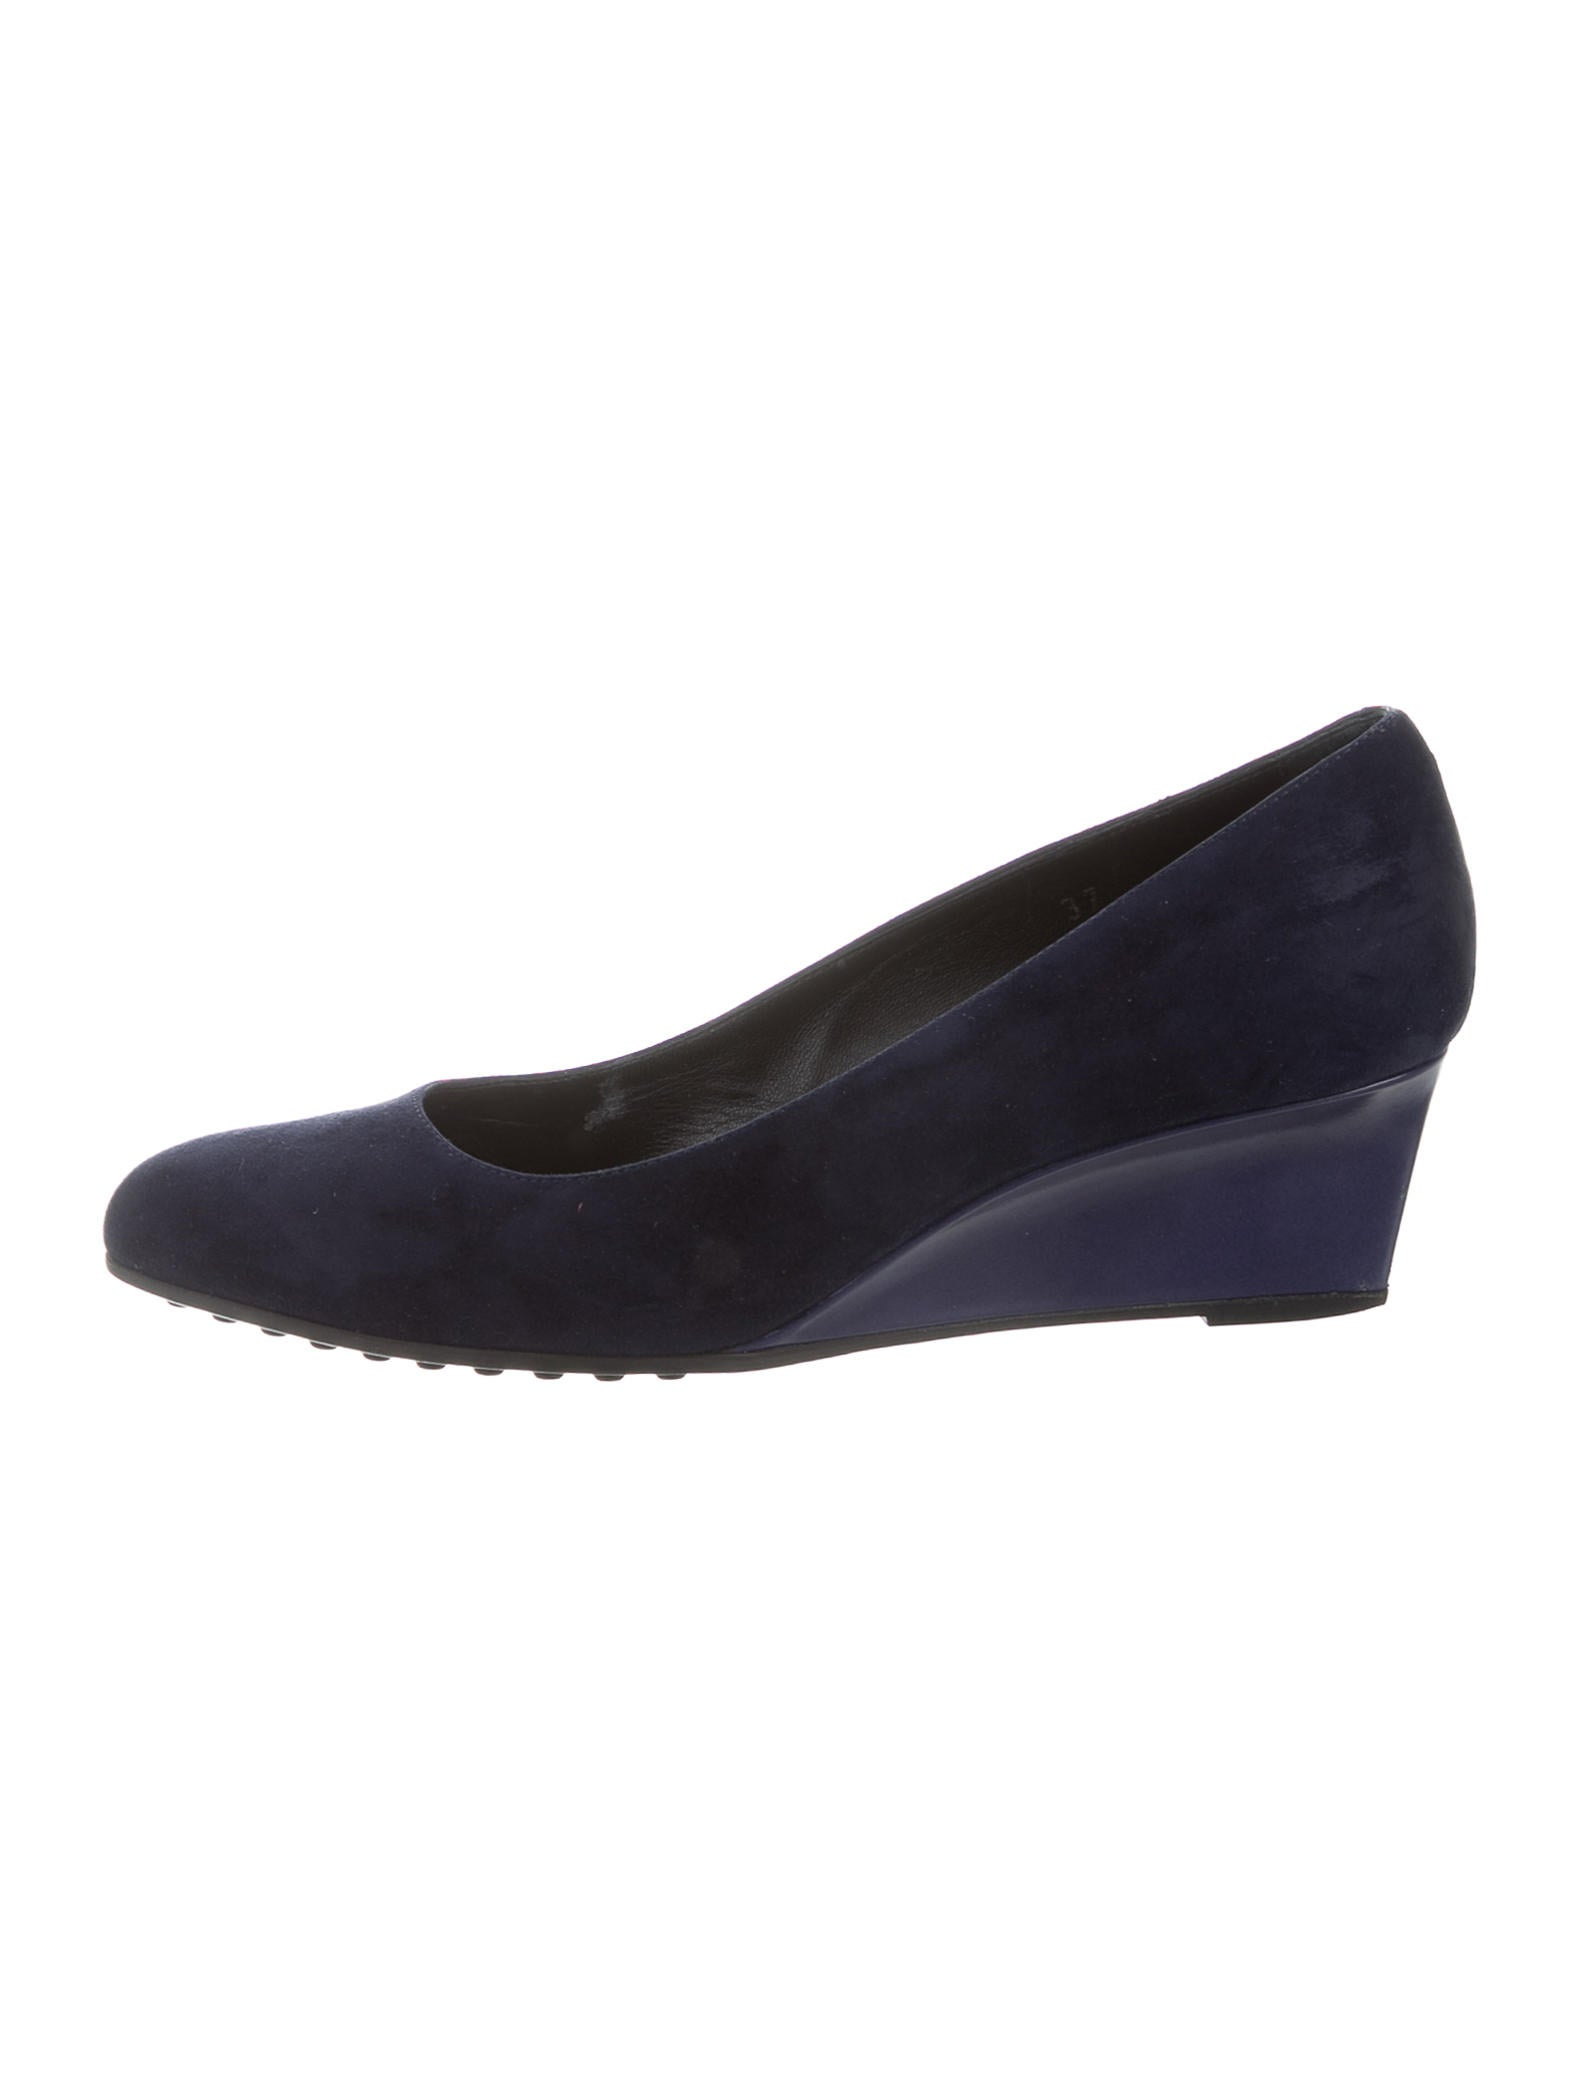 tod s suede semi pointed toe wedges shoes tod37826